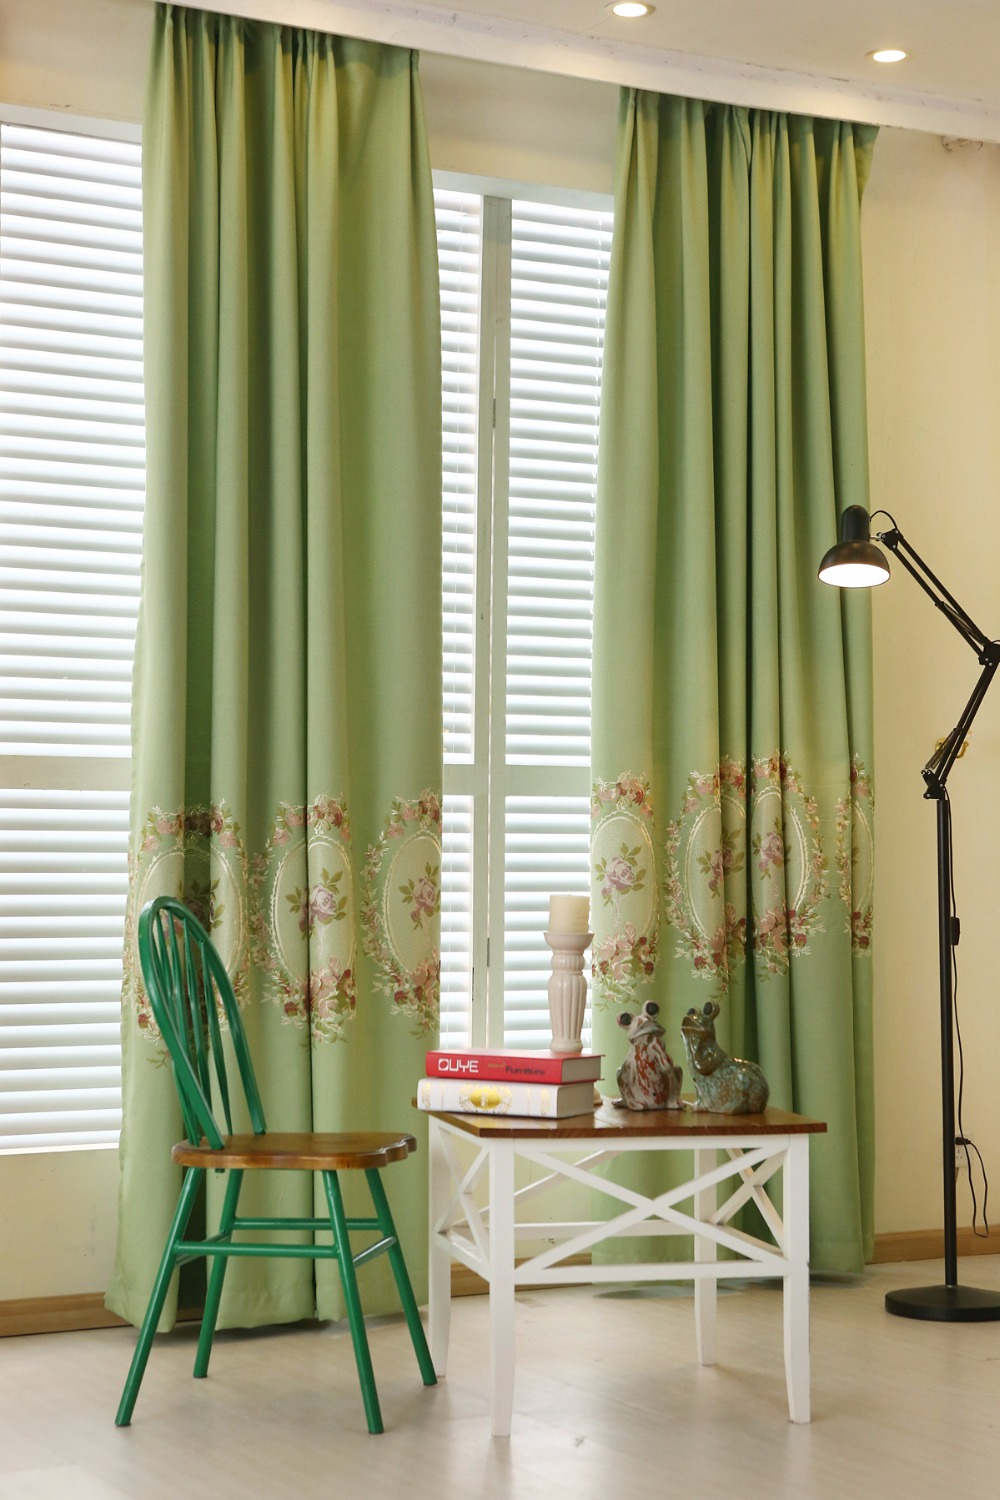 High Quality Pastoral Floral Embroidered Window Blackout Curtain For Living Room Bedroom Navy Blue Green 2